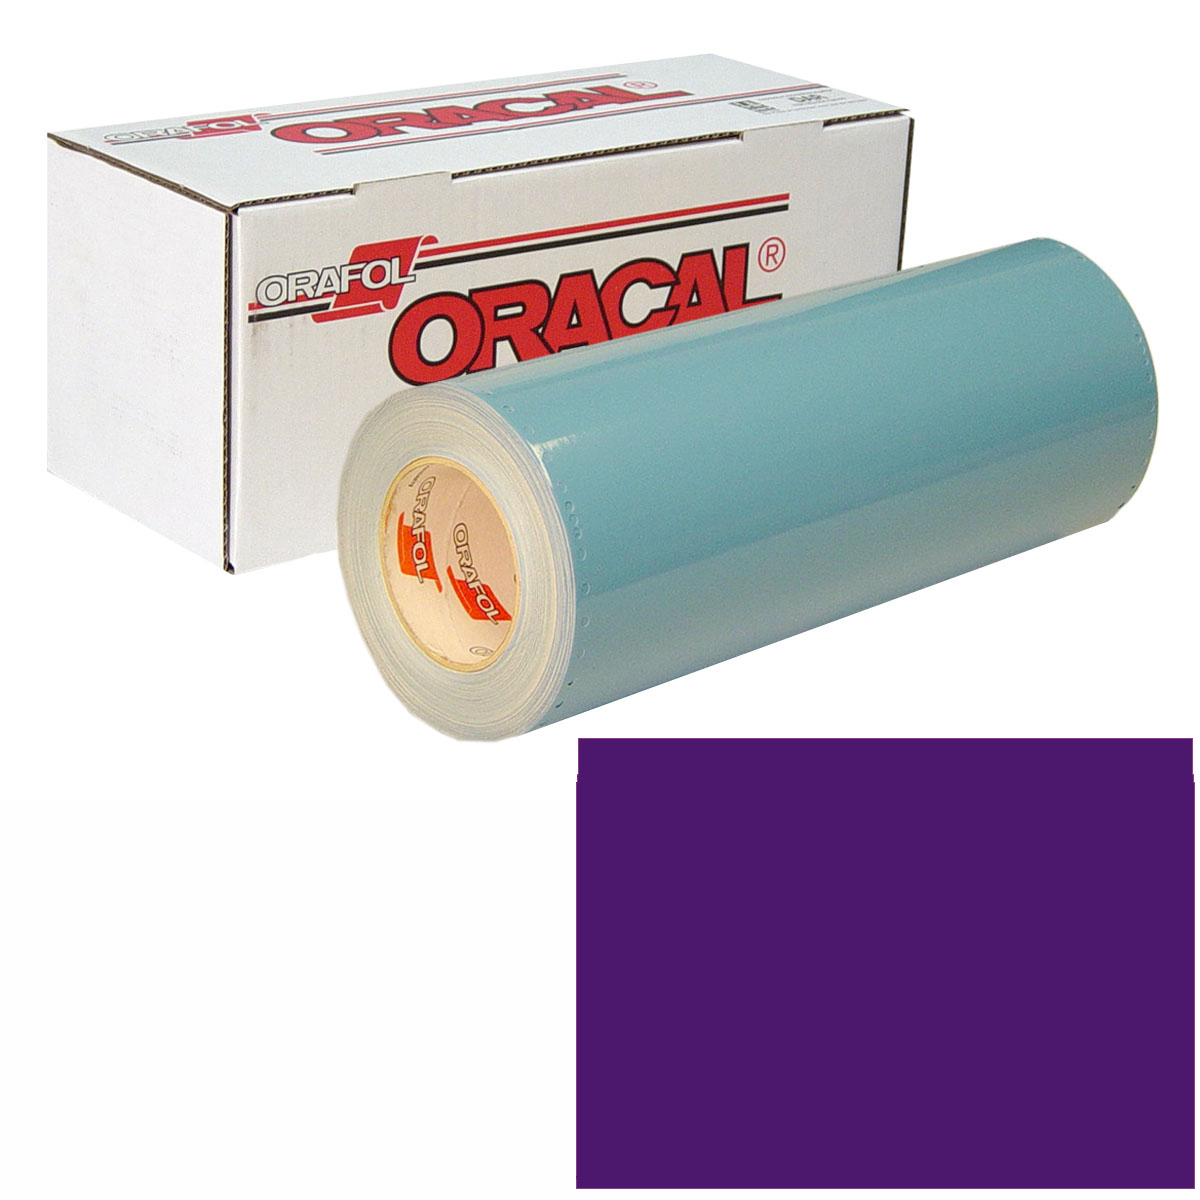 ORACAL 751 15In X 10Yd 040 Violet